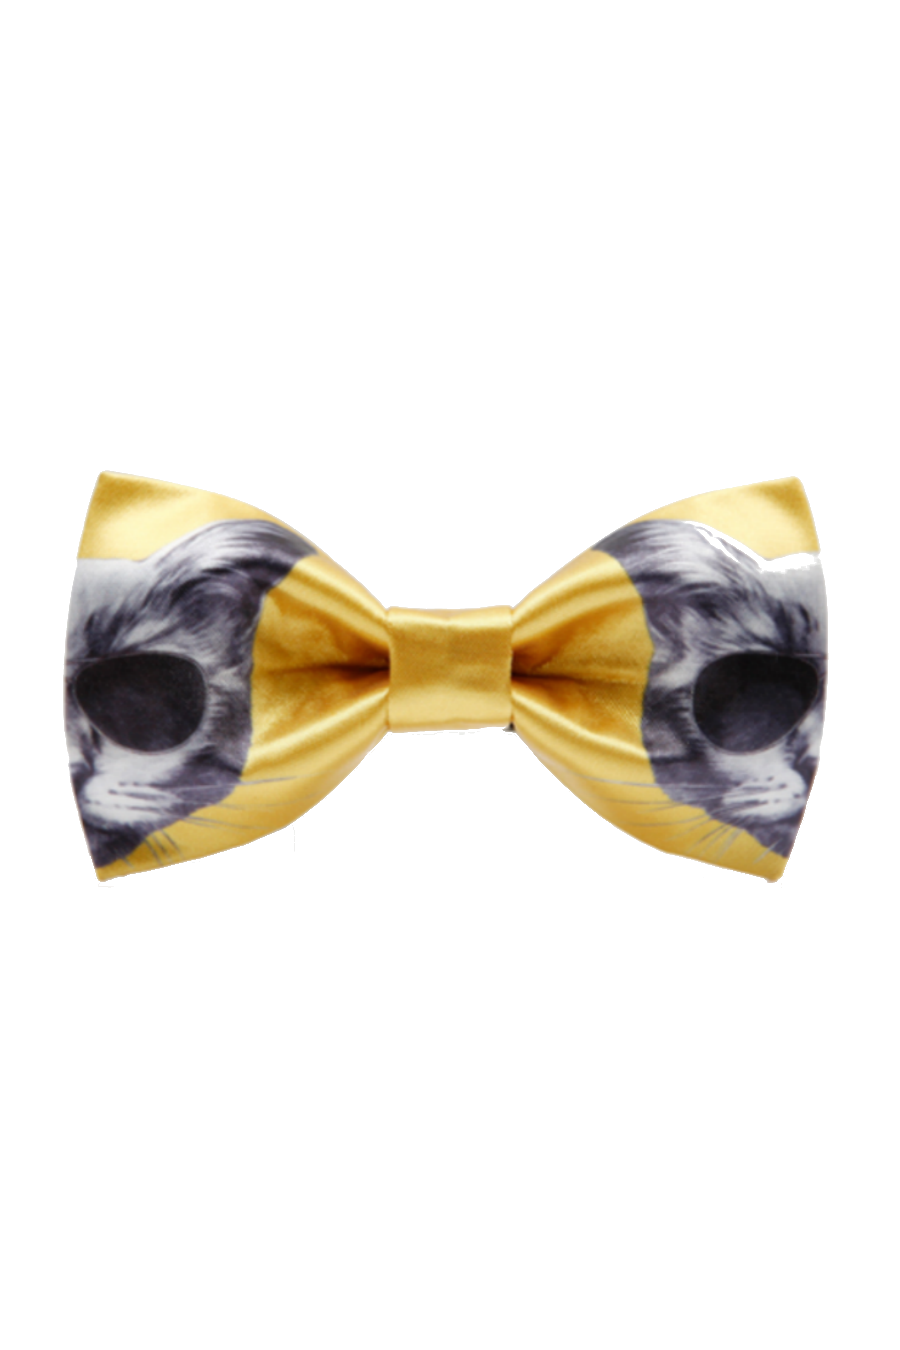 Glasses Kitten Cat Bow Tie